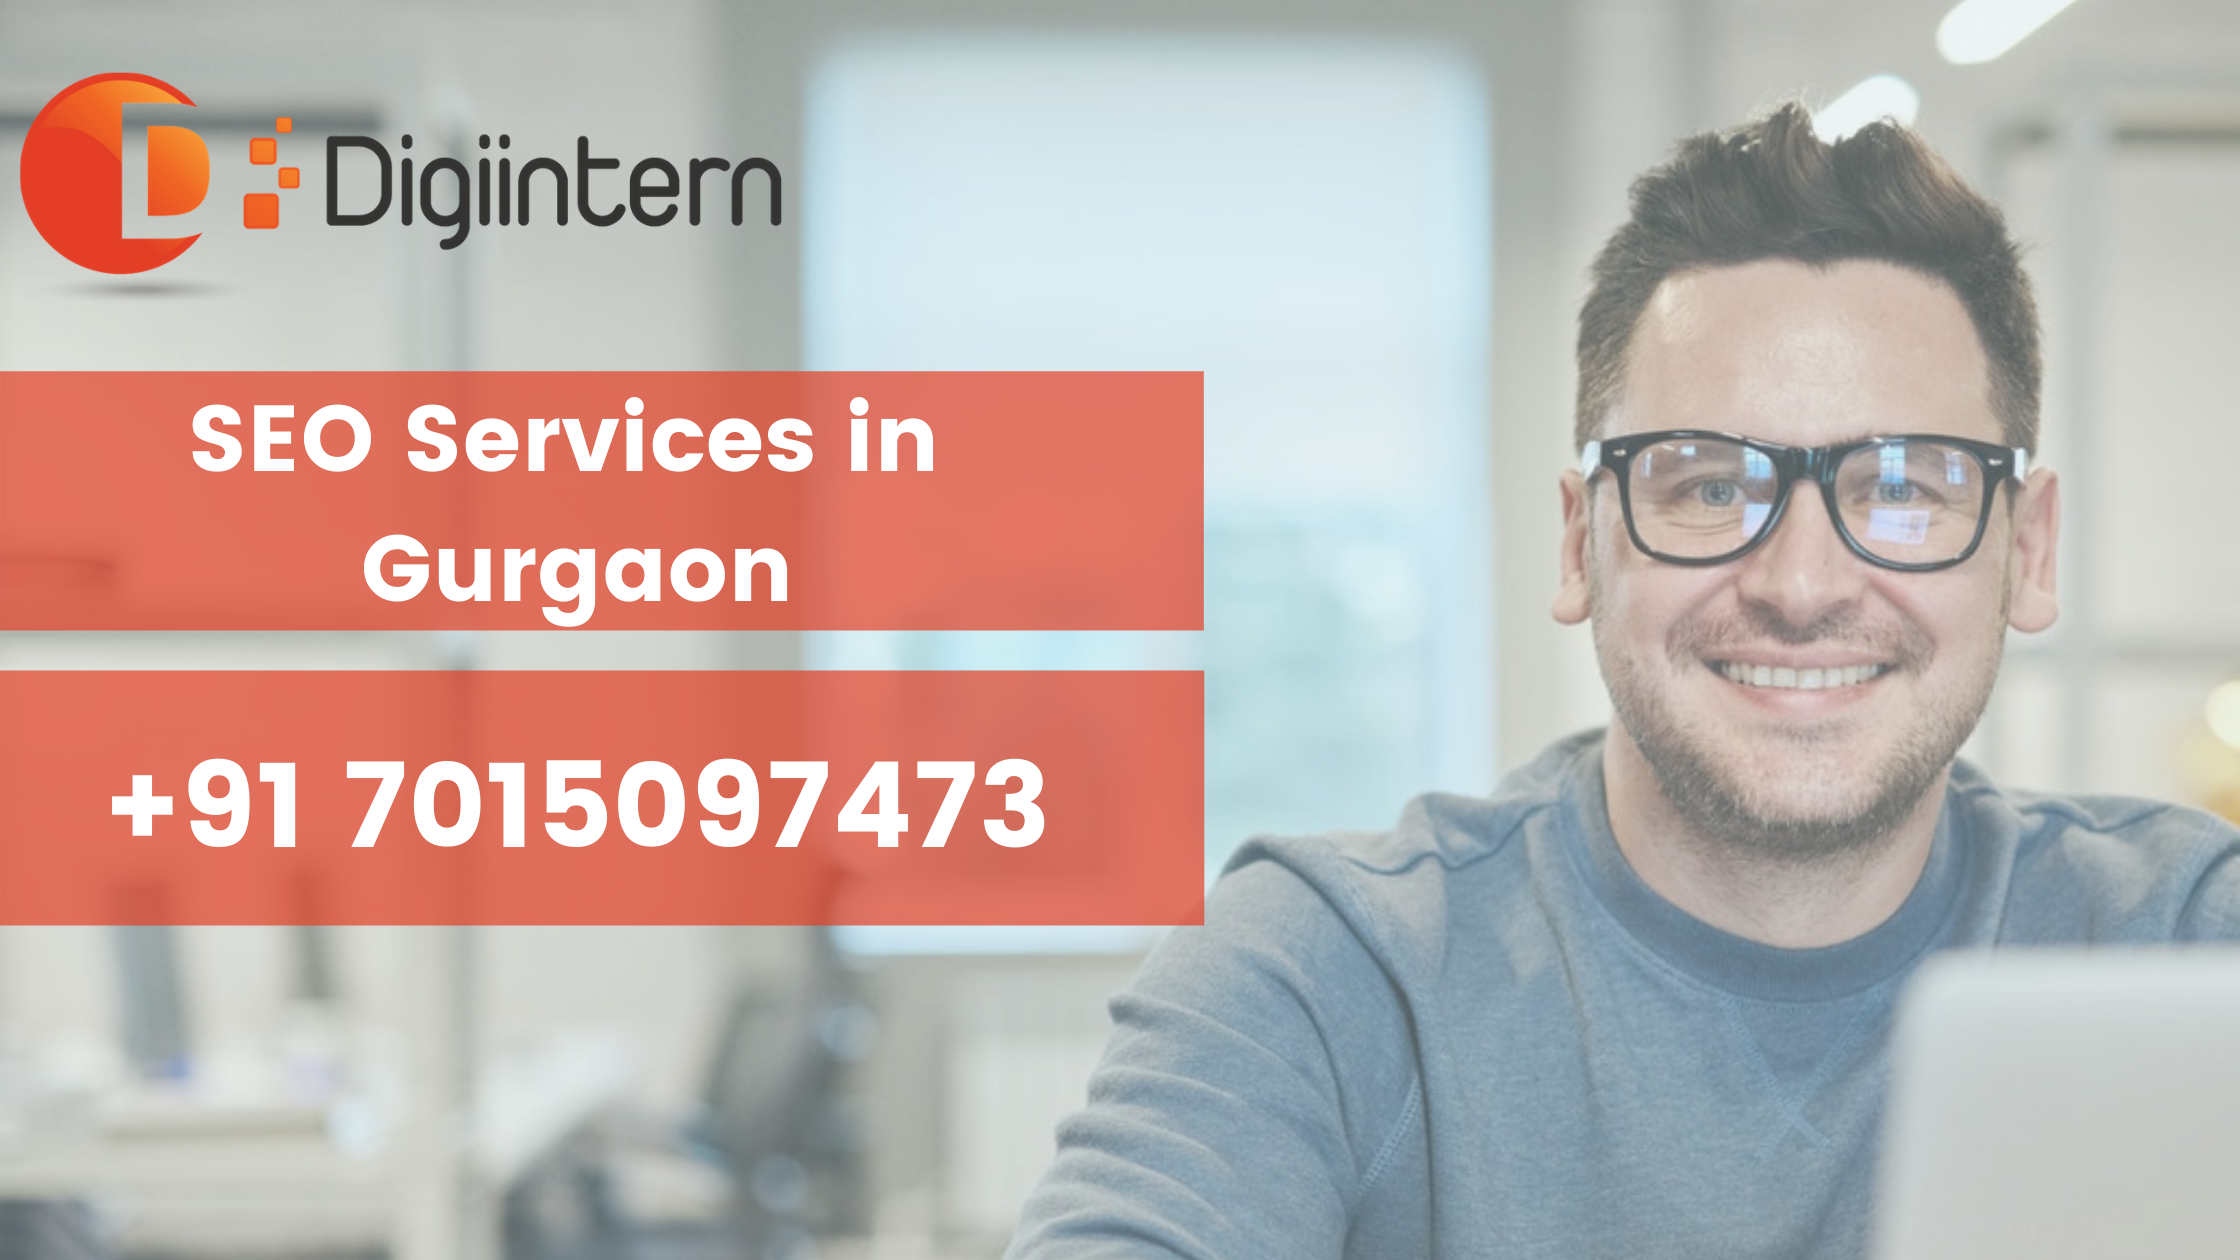 SEO Services in Gurgaon